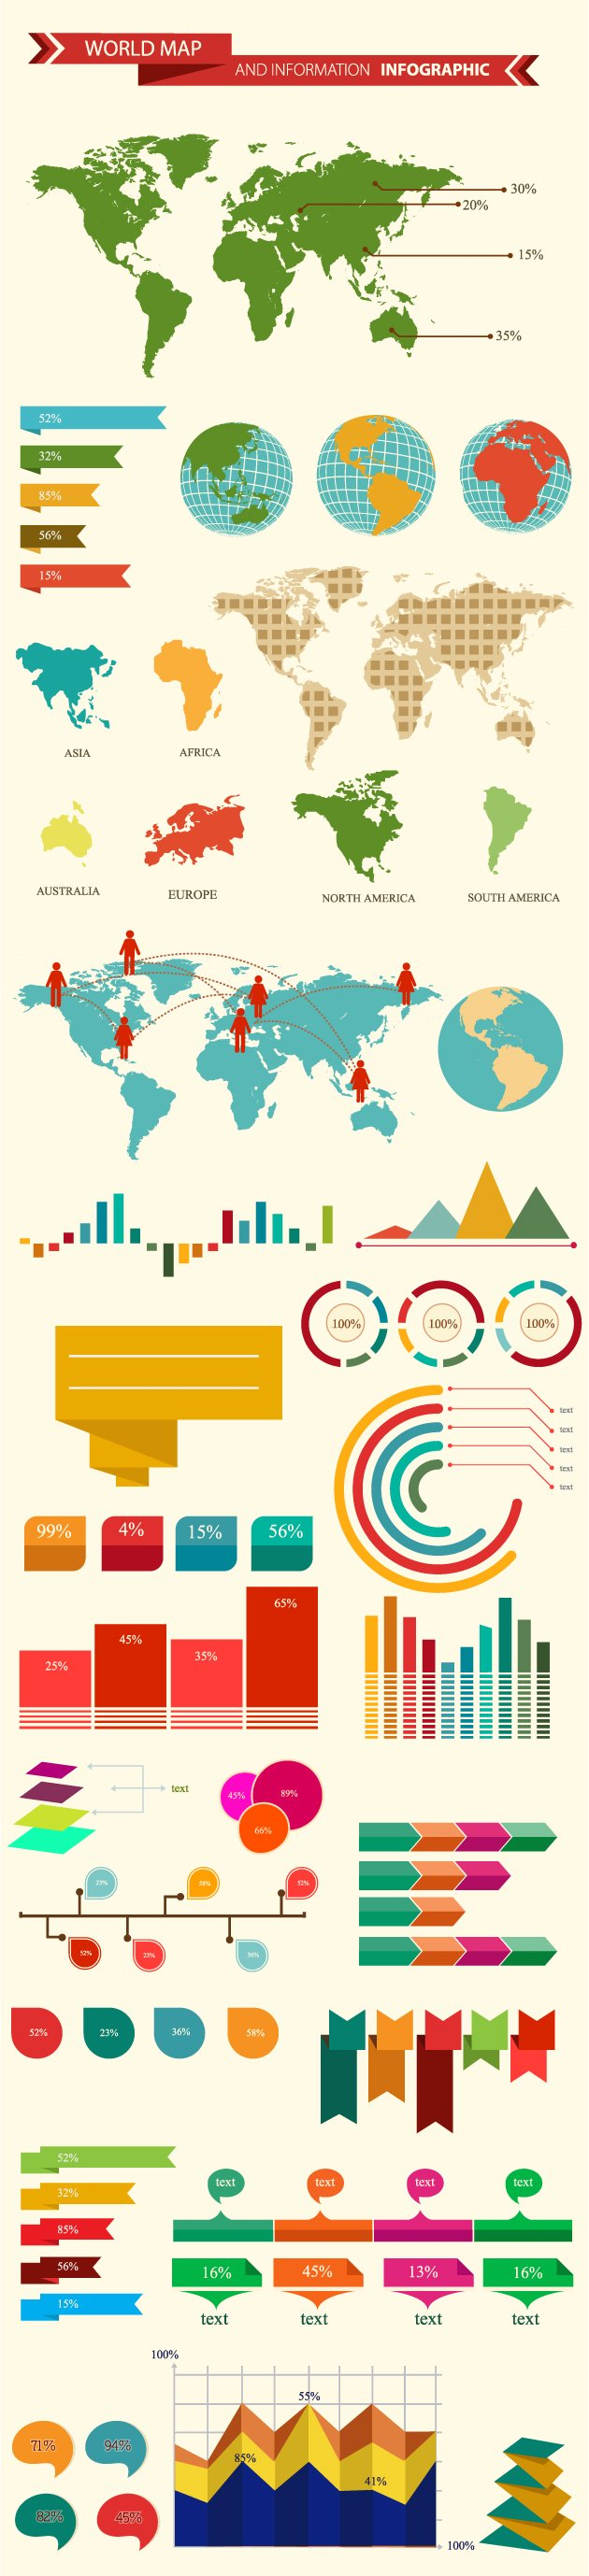 world-map-and-information-infographic-vector